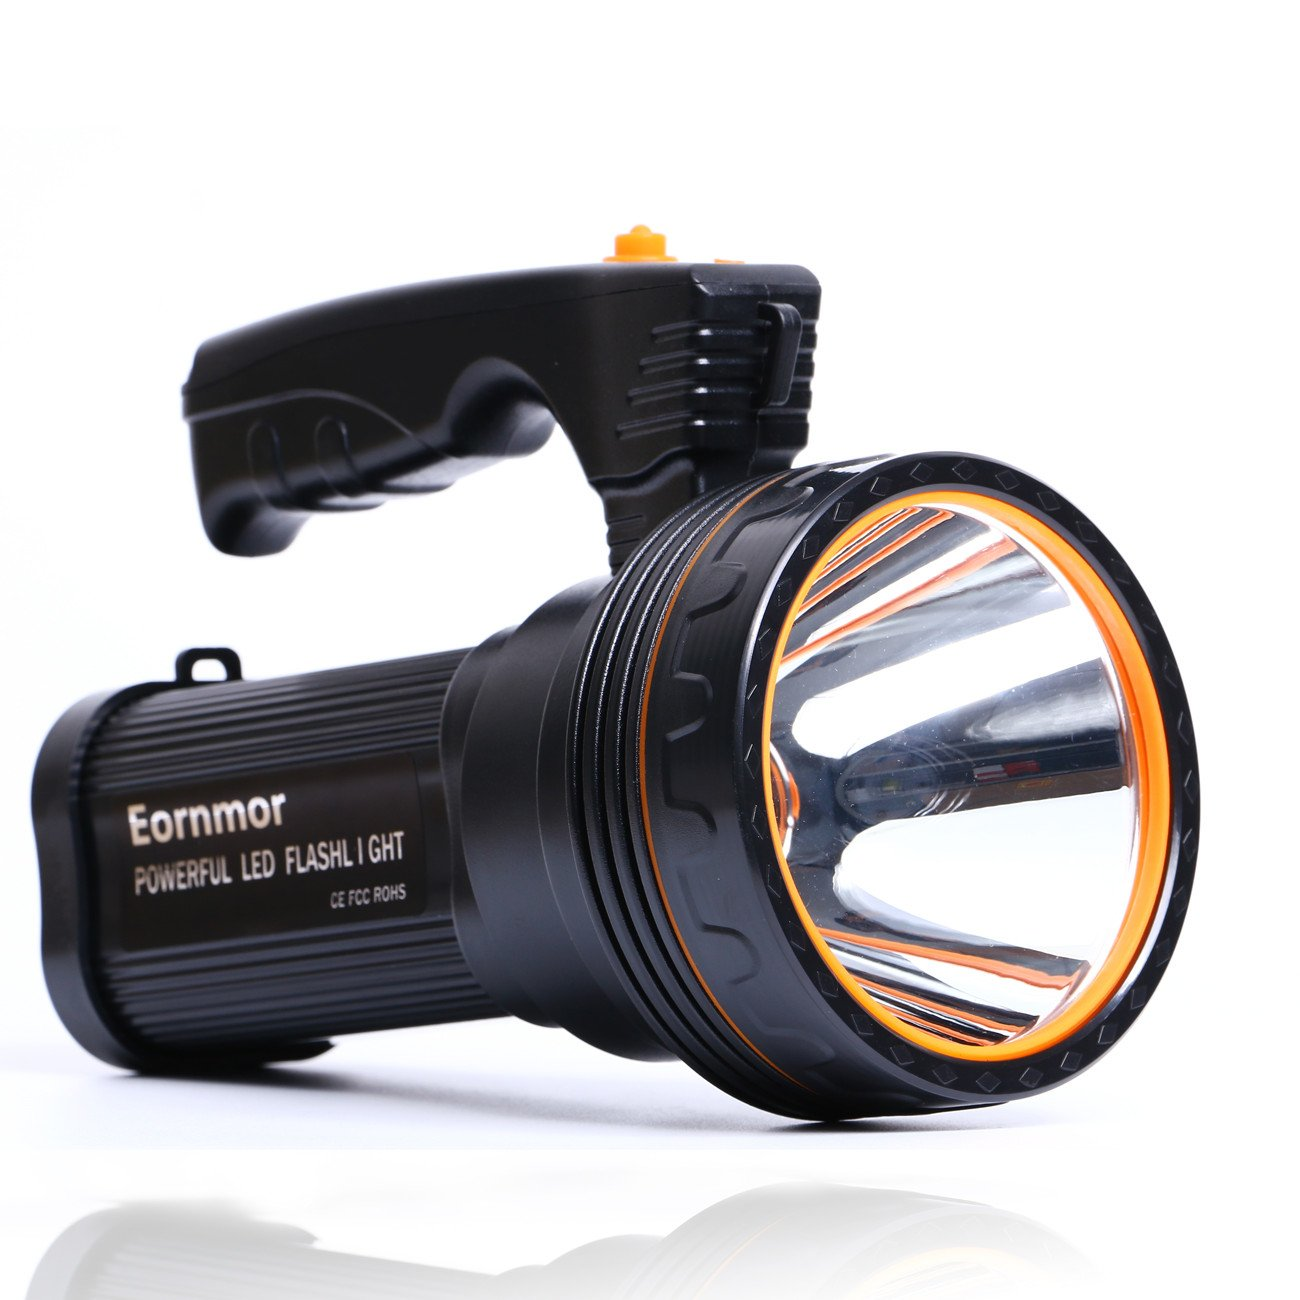 Eornmor Flashlight Rechargeable Searchlight Multi function